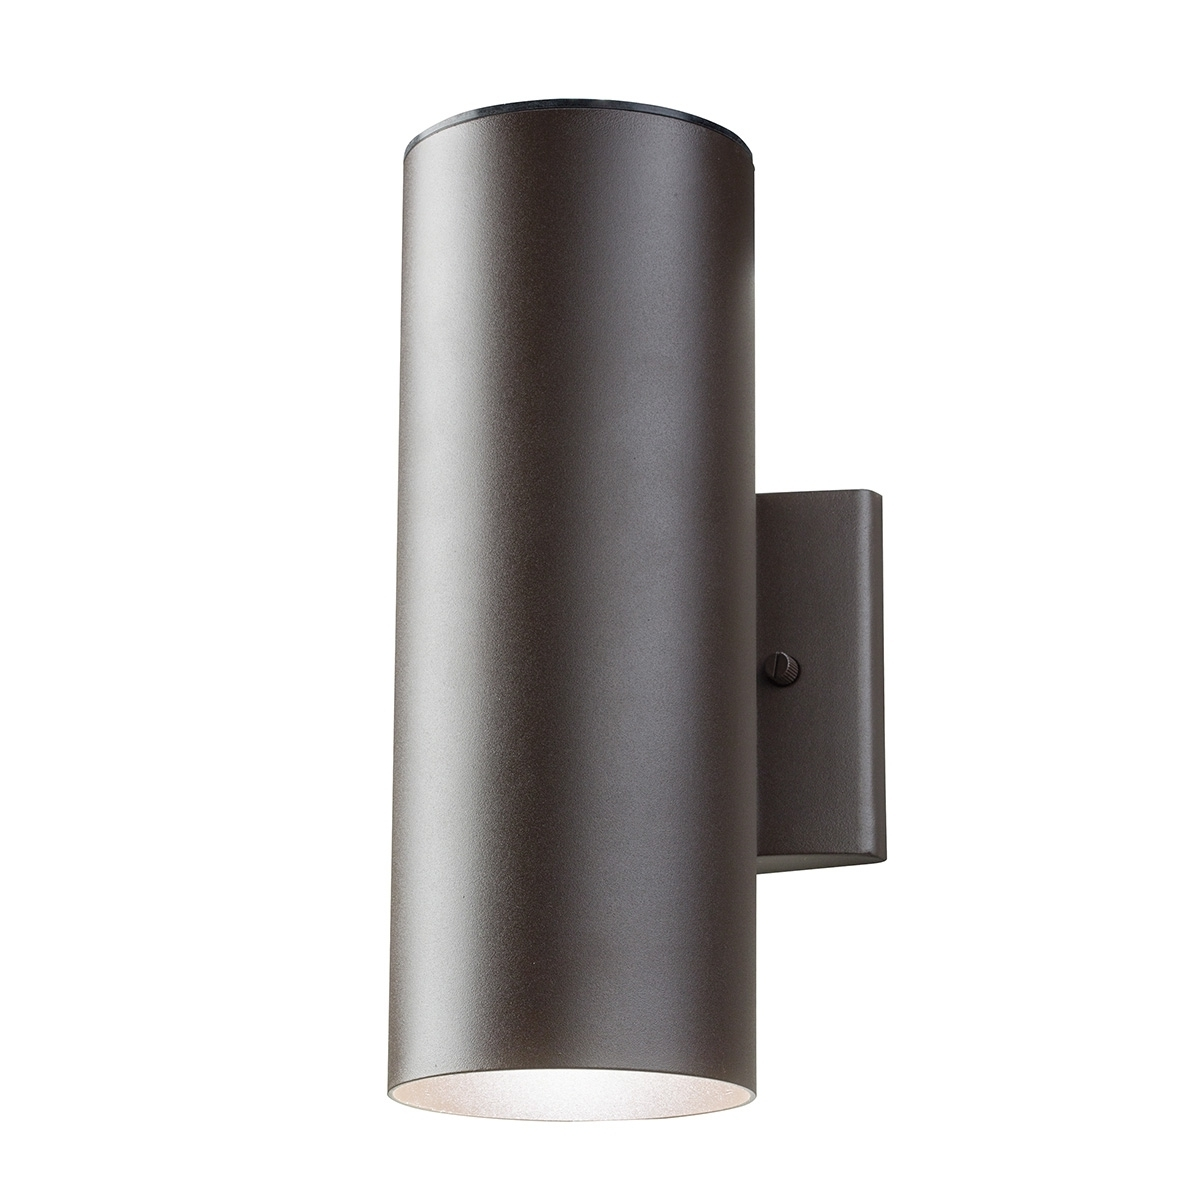 Most Recent 12 Volt Led Outdoor Wall Lights • Outdoor Lighting Within 12 Volt Outdoor Wall Lighting (View 5 of 20)